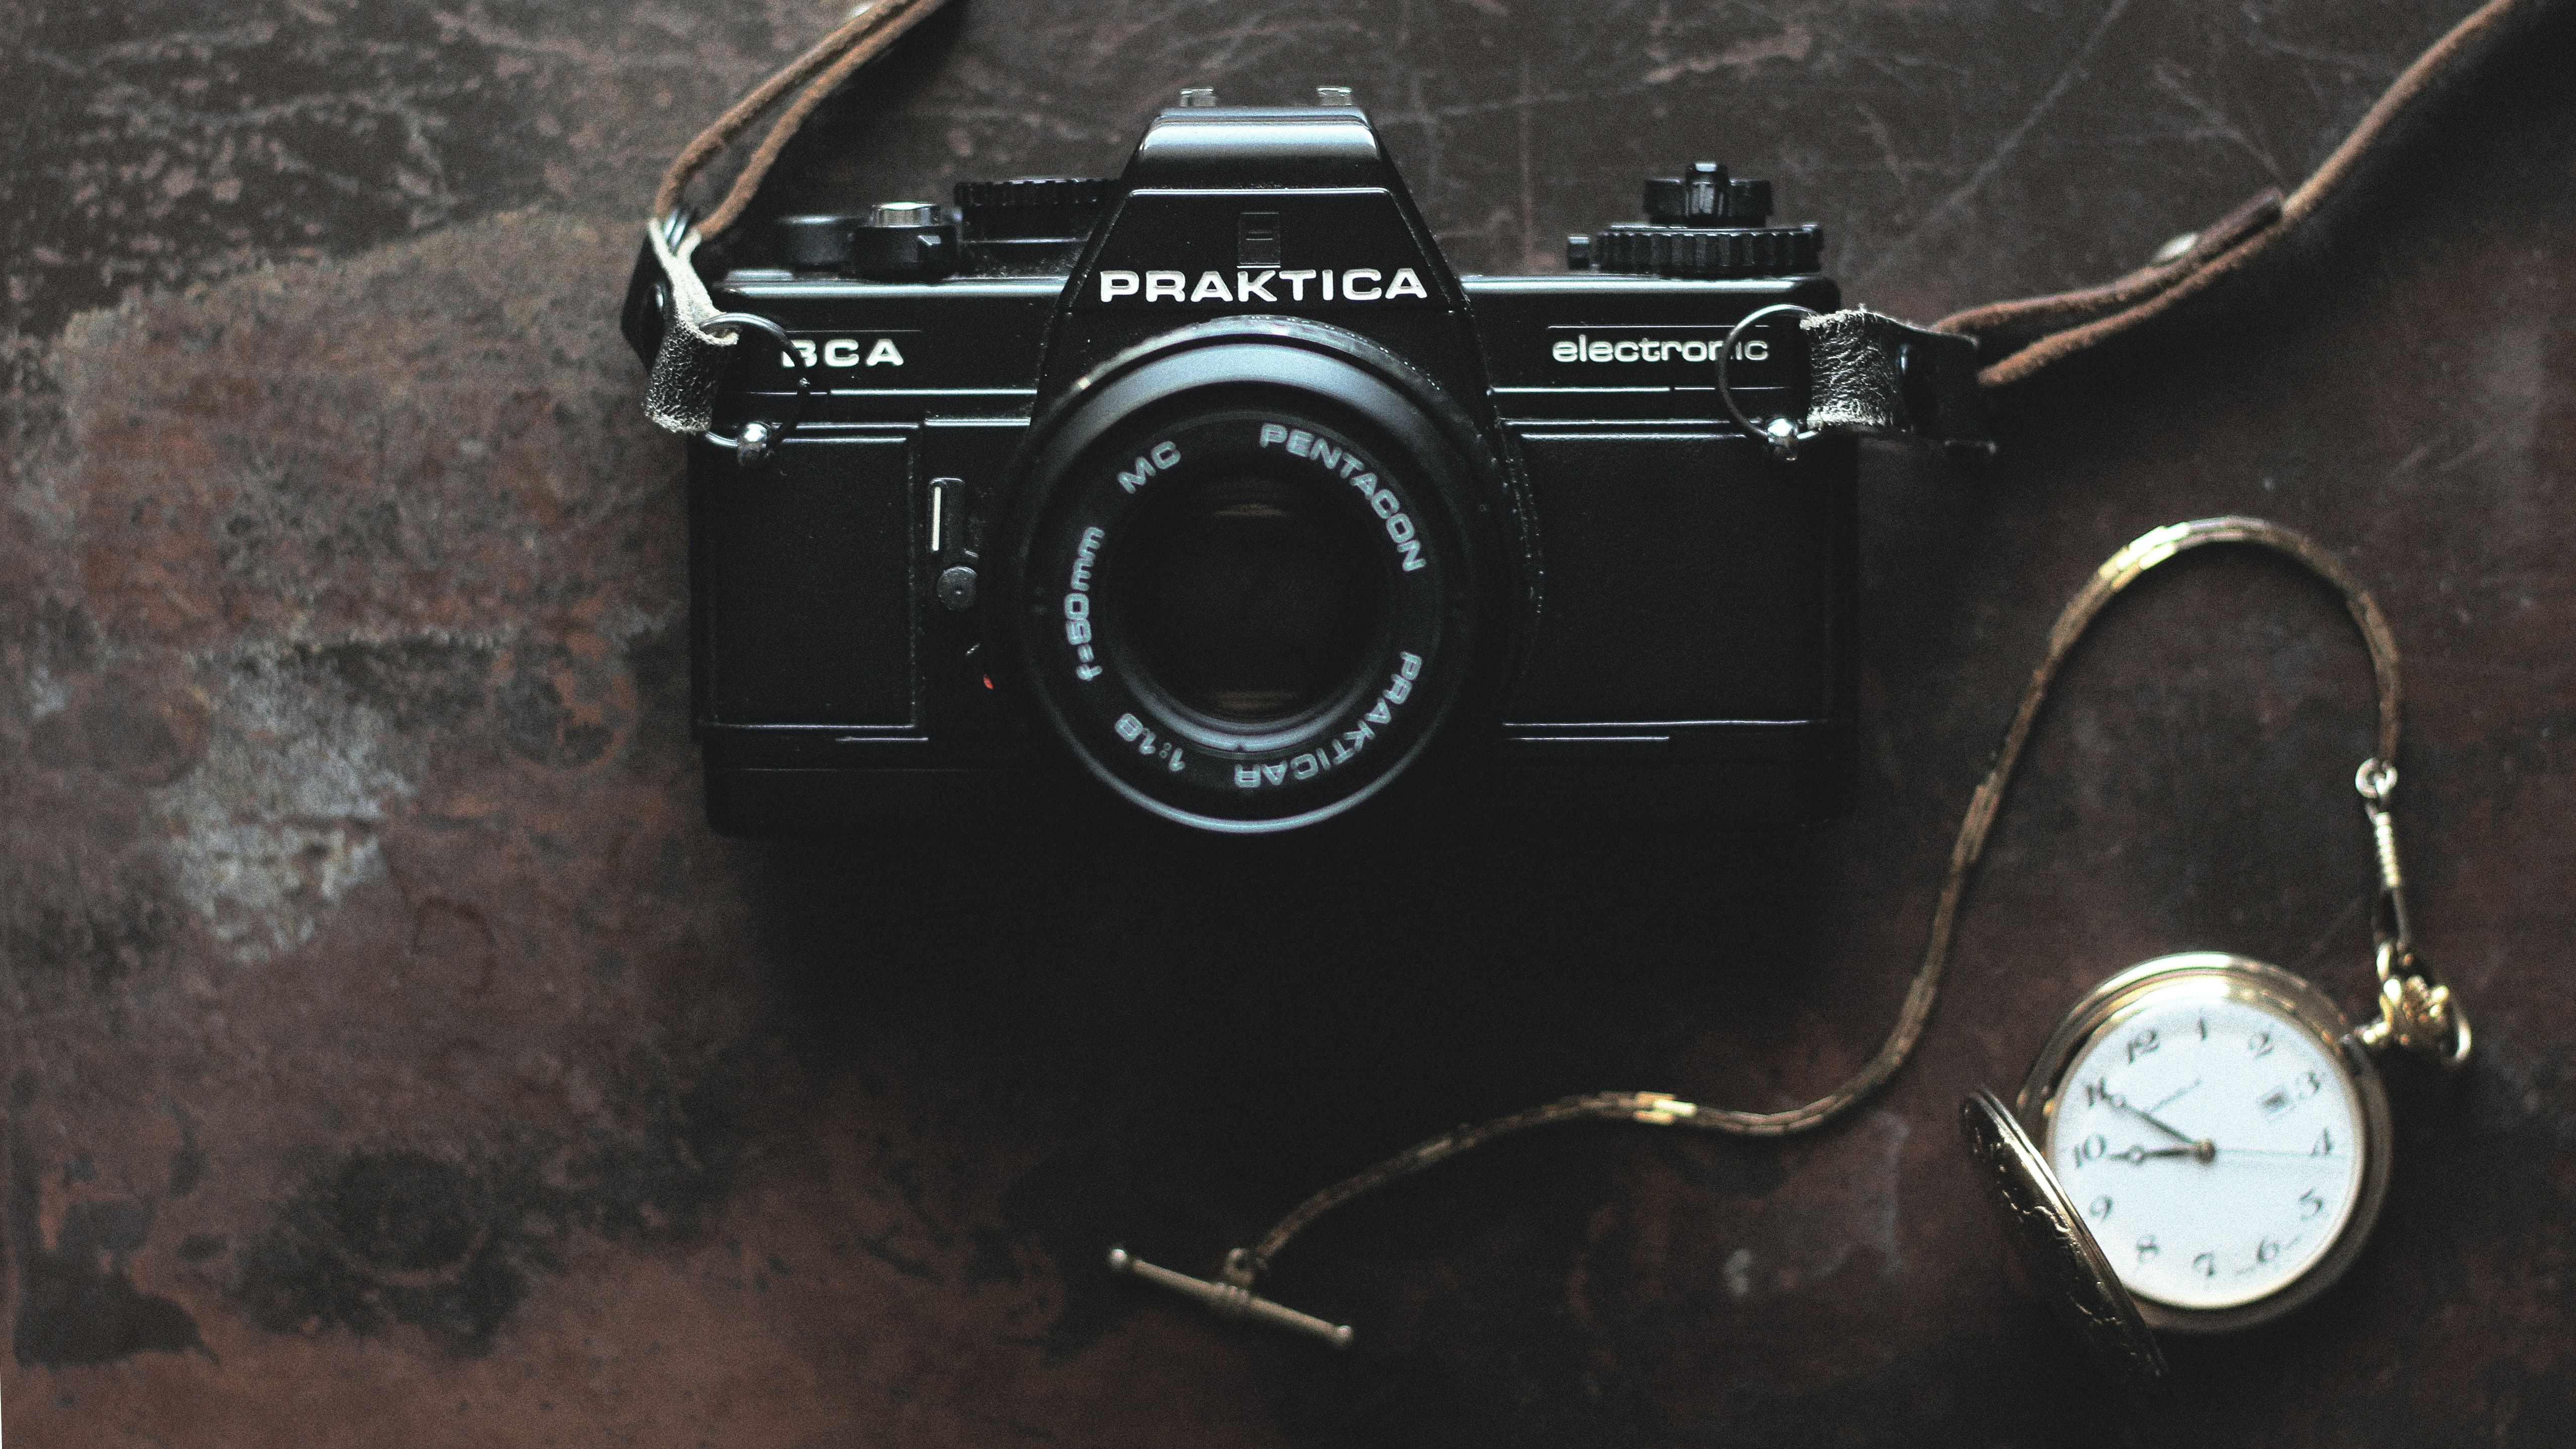 Praktica electronic vintage camera with a leather strap beside a gold pocket watch on a scratched brown surface